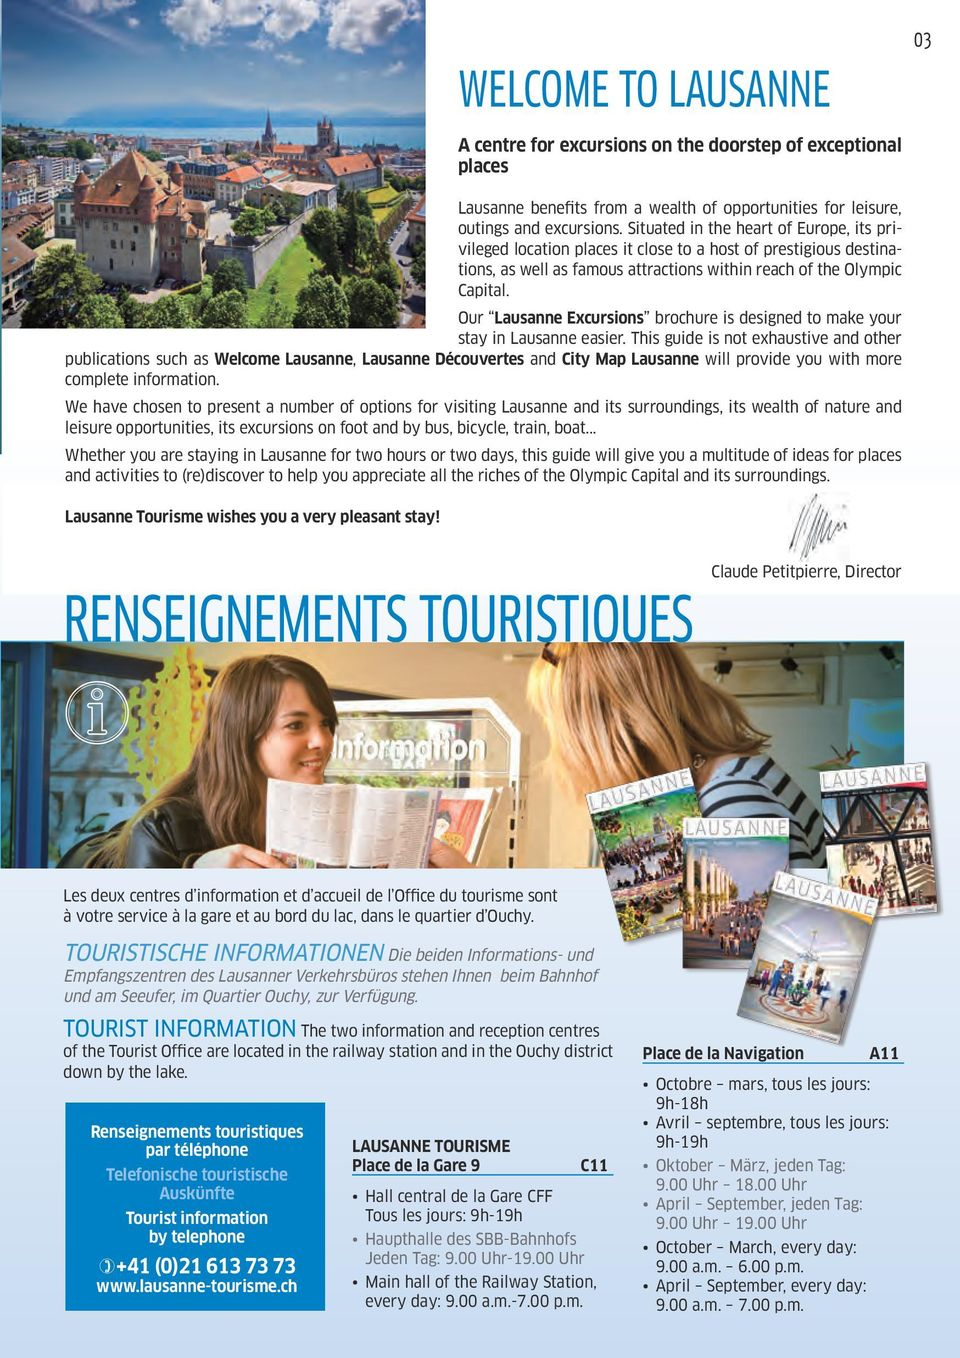 Our Lausanne Excursions brochure is designed to make your stay in Lausanne easier.